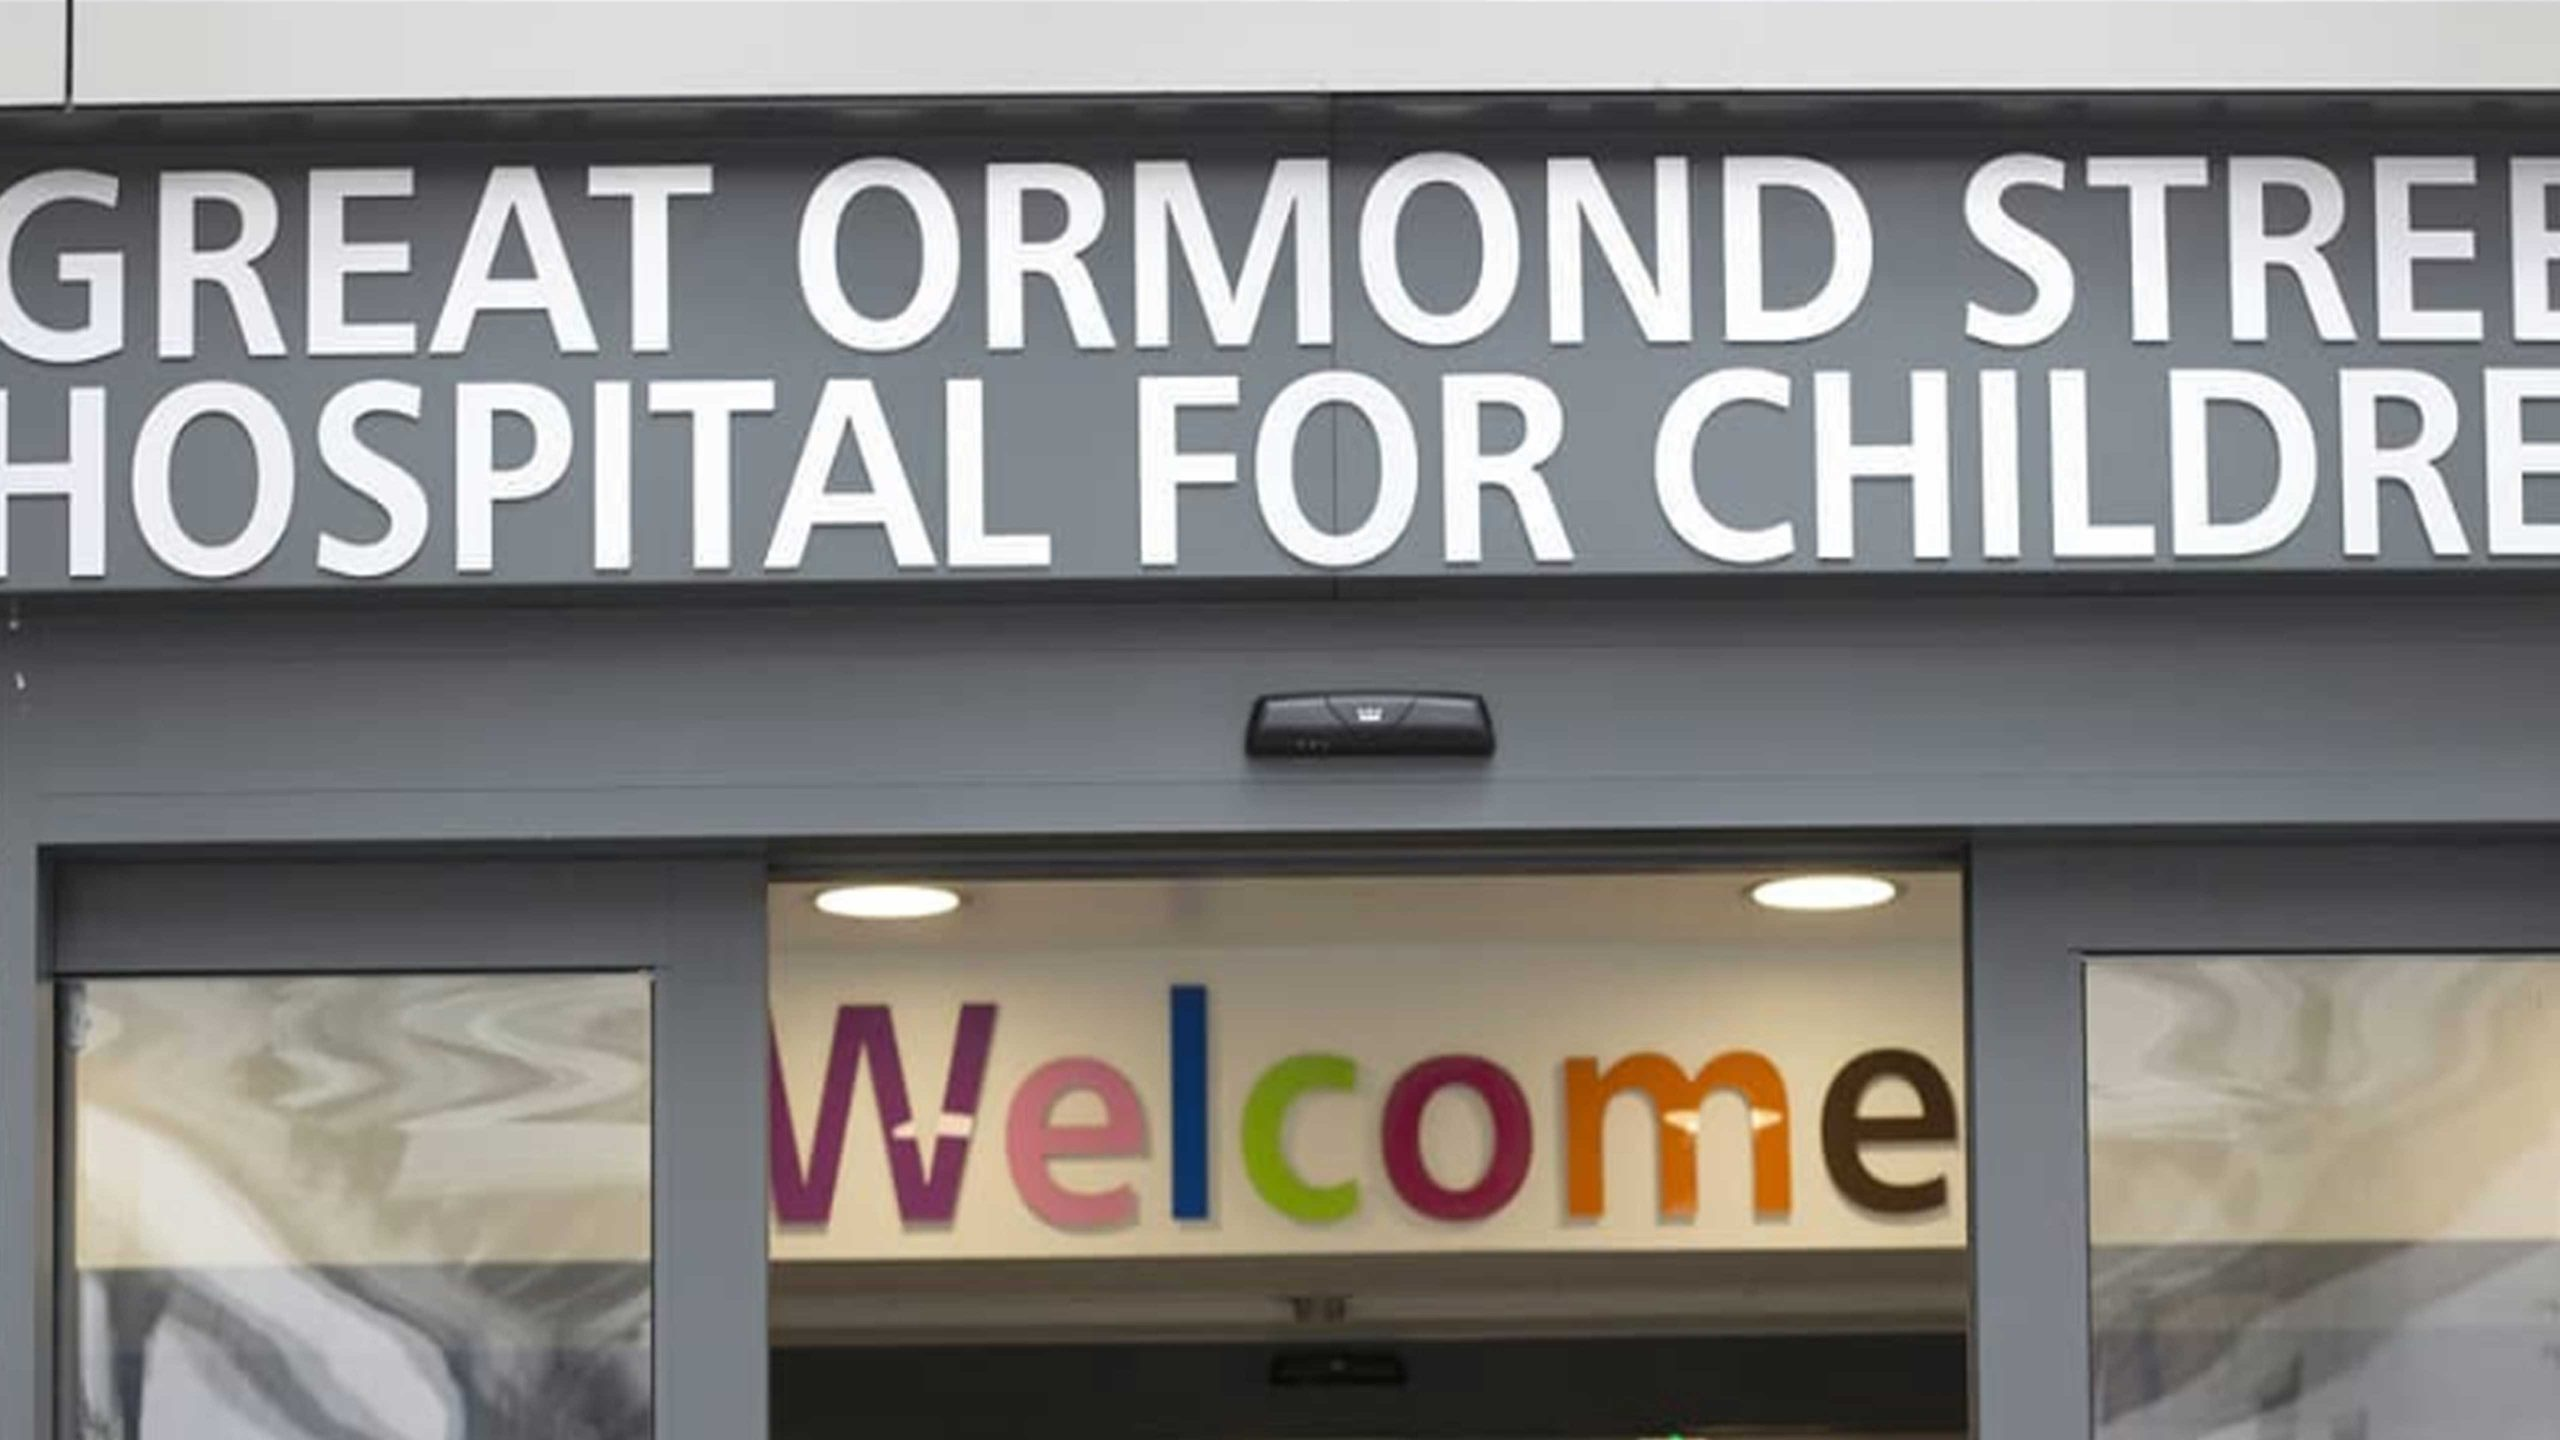 Unborn baby treated inside womb for spina bifida in London hospital